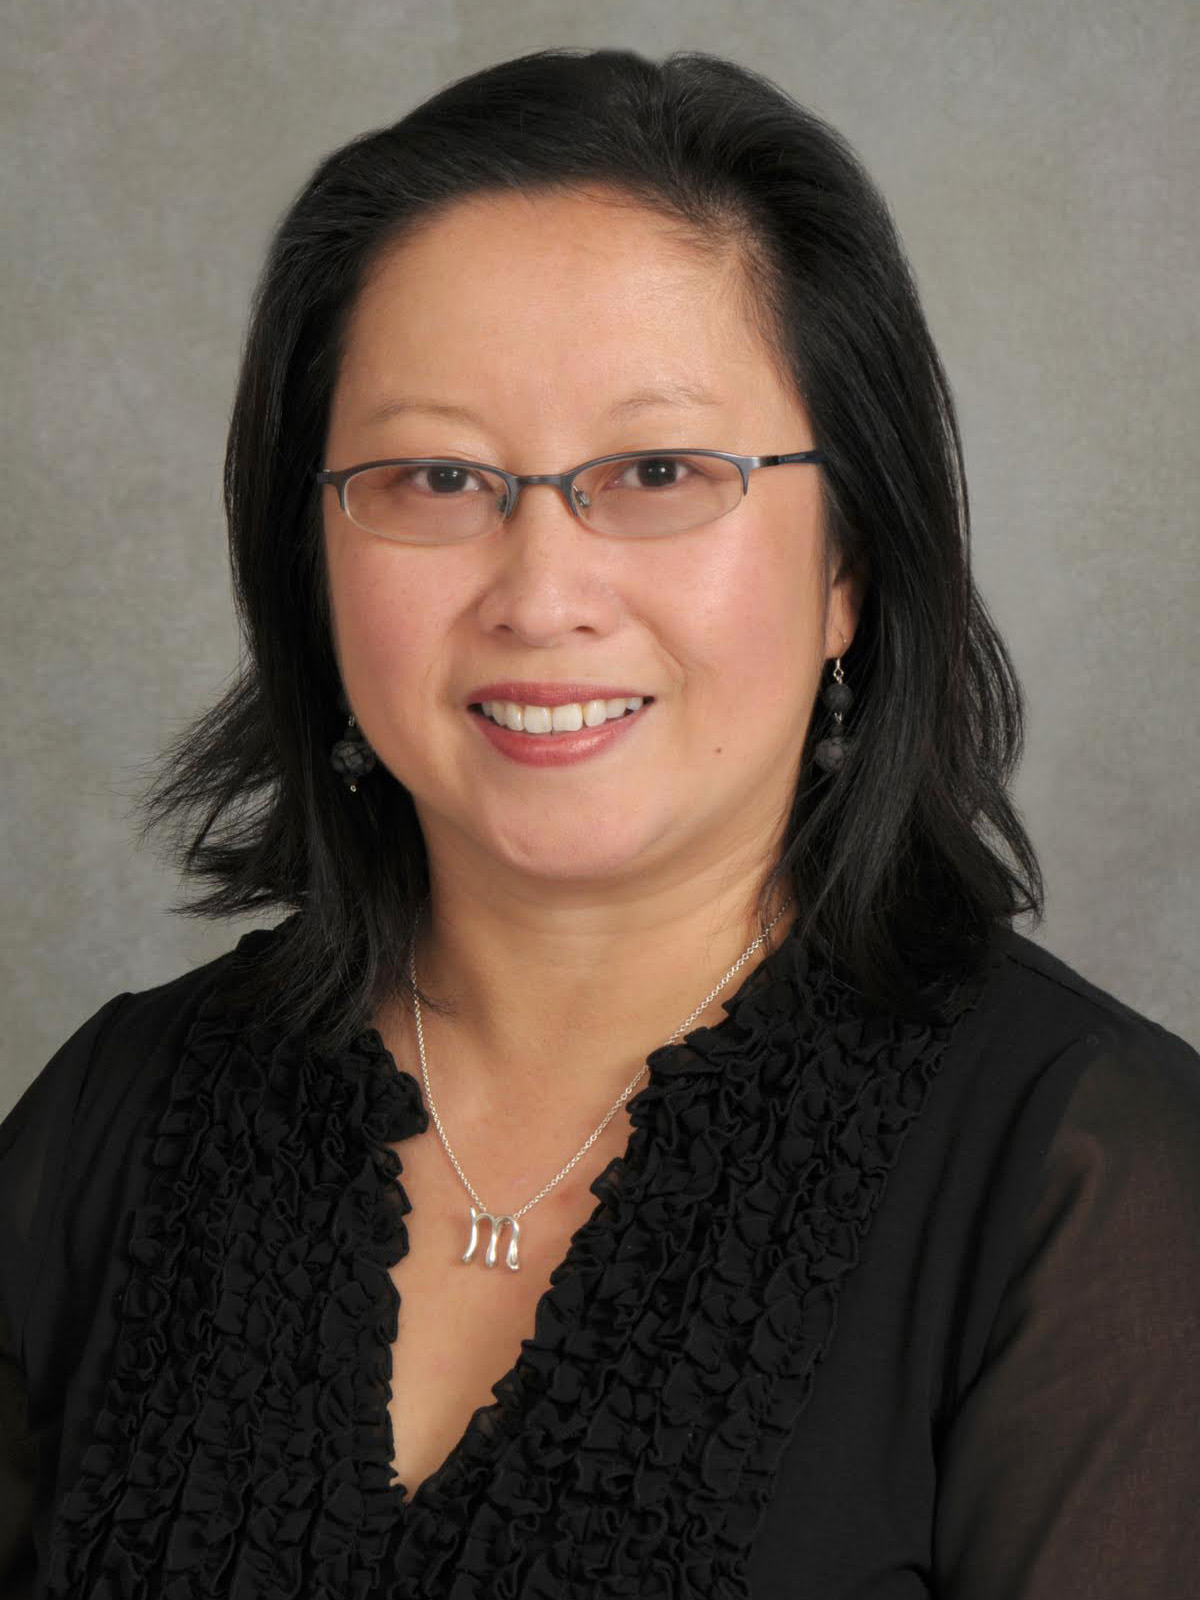 MeiLin Wan -Vice President, Textile Sales at Applied DNA Sciences